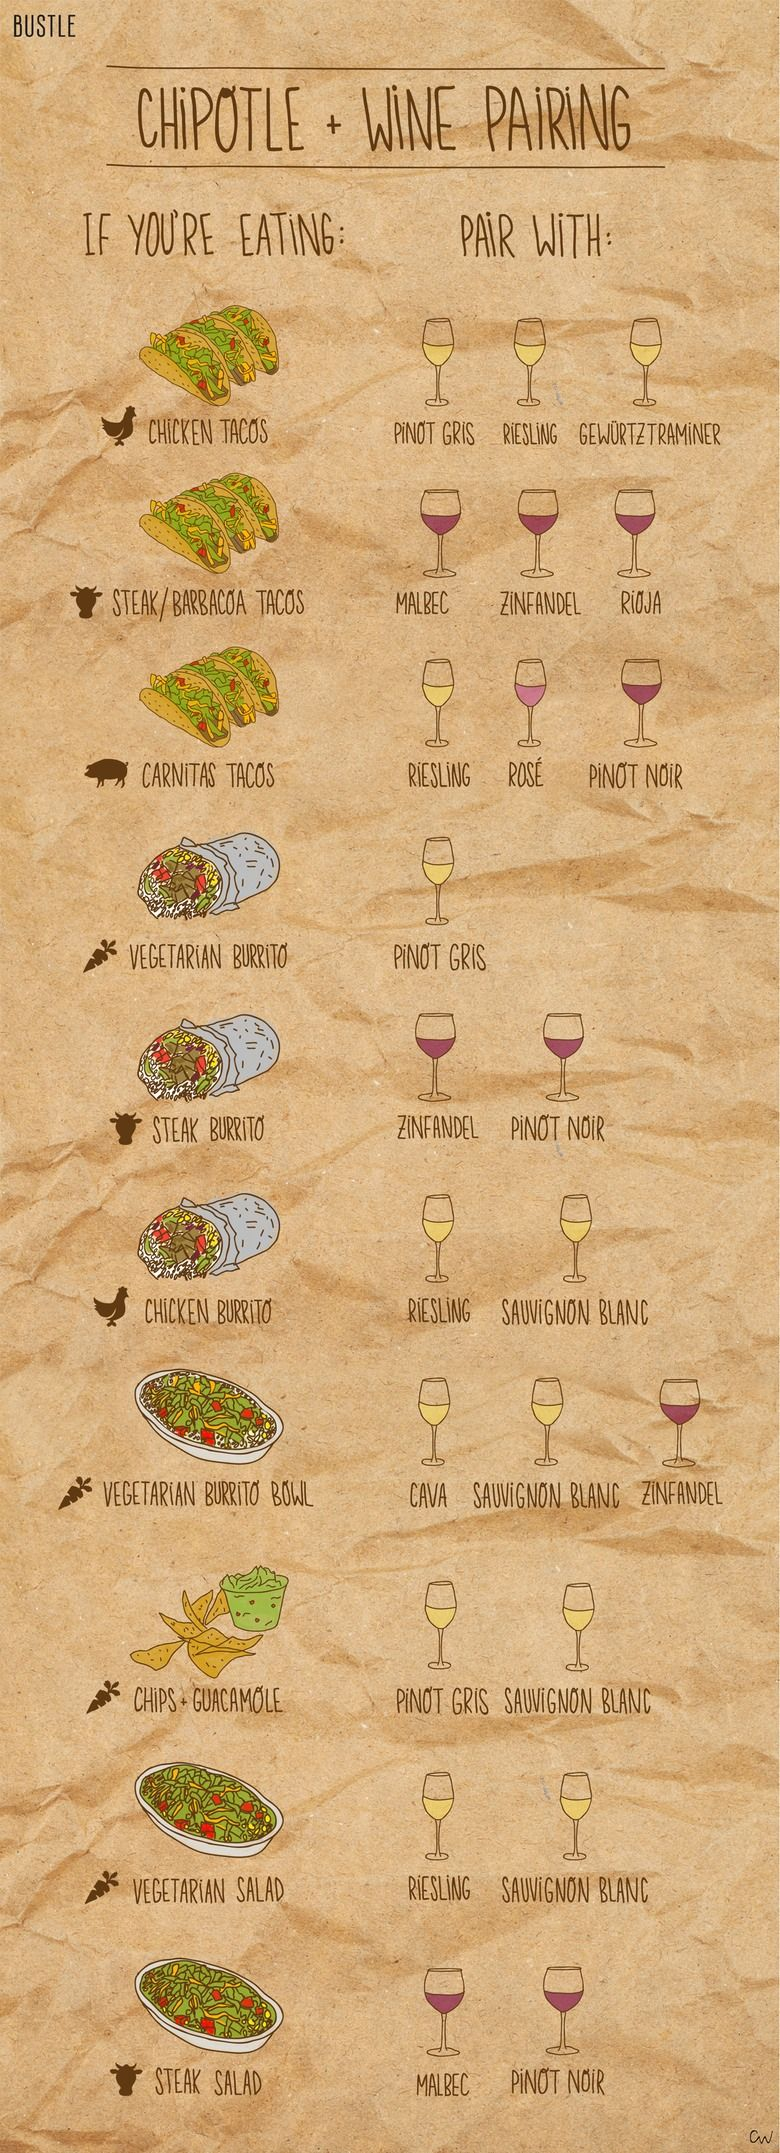 Which Wine Pairs Best With Your Chipotle Order? This Infographic Tells You Everything You Need To Know | Bustle